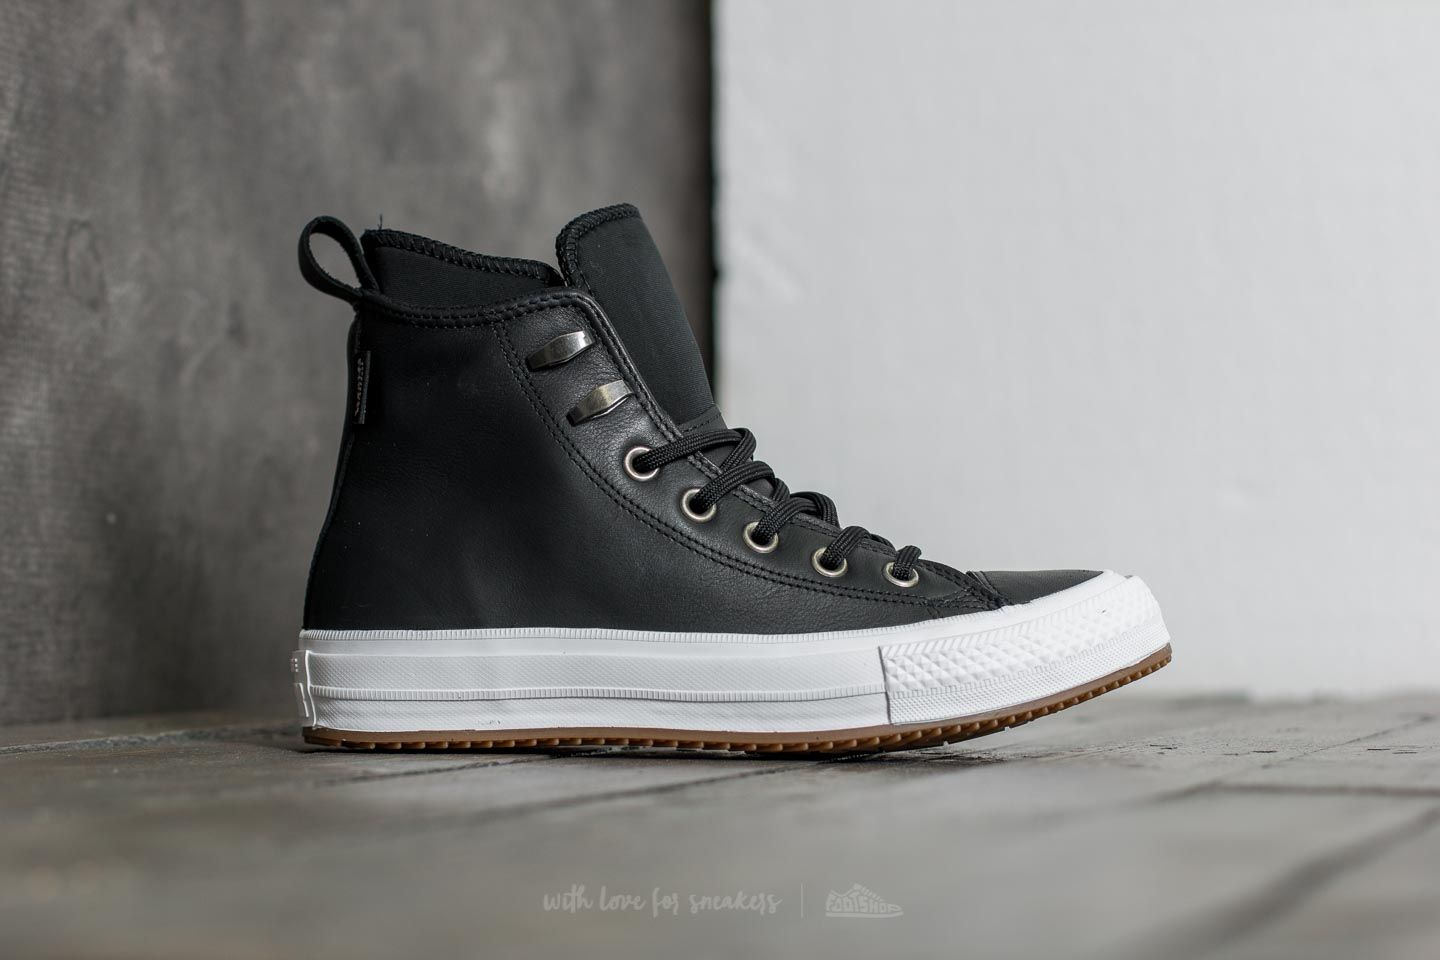 0651393eb24a Converse Chuck Taylor All Star Waterproof Boot Hi Black  Black  White at a  great